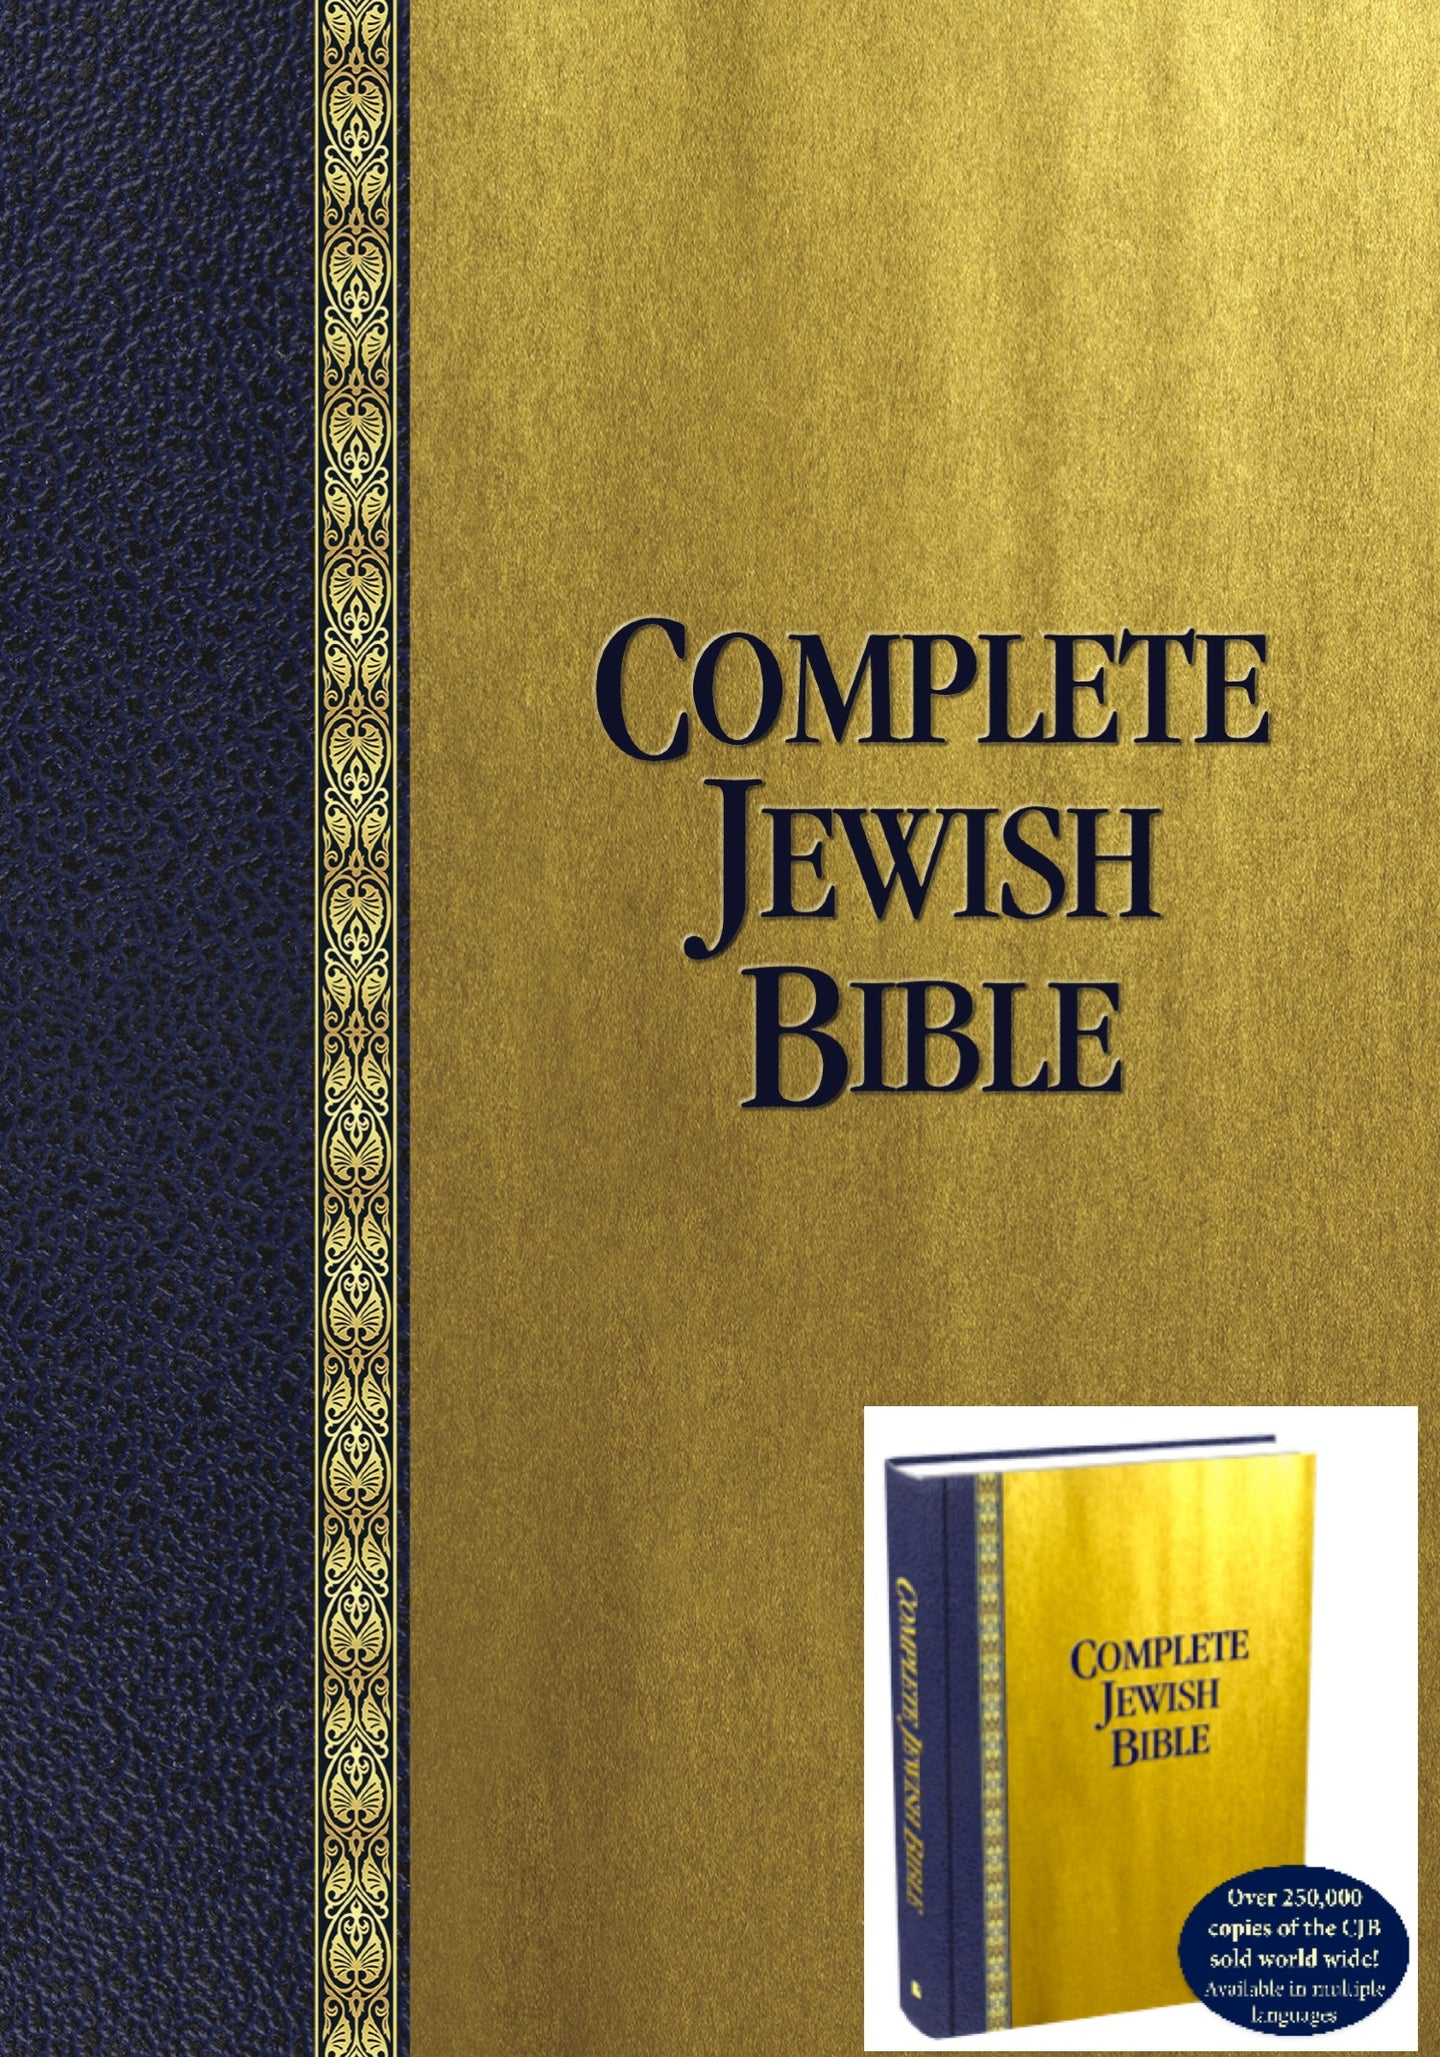 Complete Jewish Bible (Case Lot of 10)